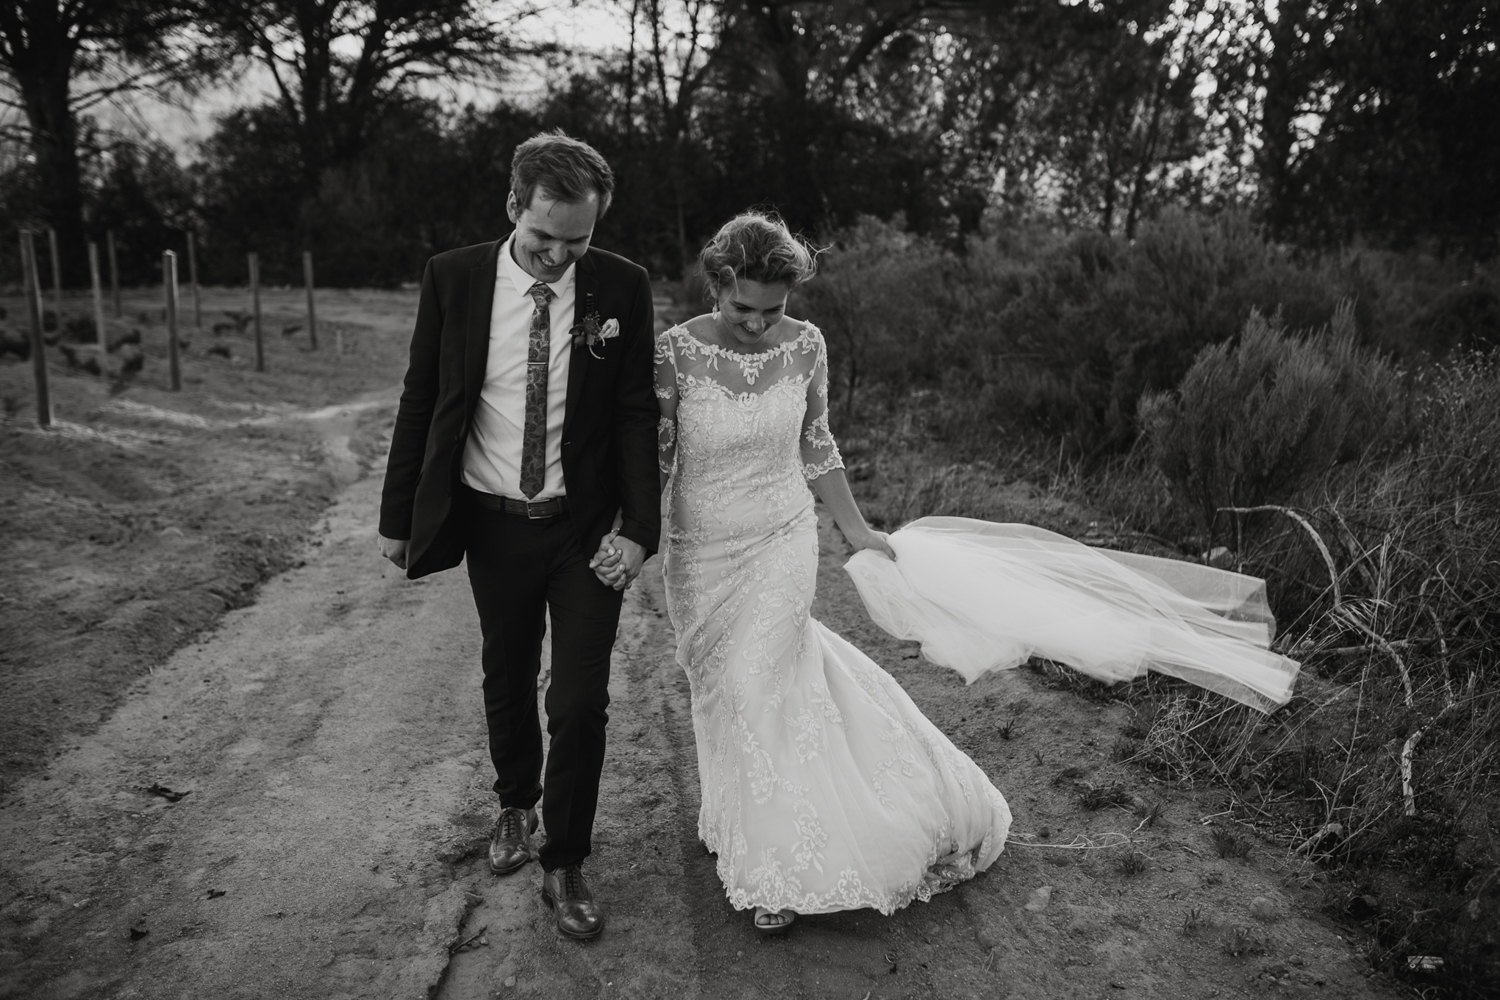 heisvisual-wedding-photographers-documentary-stellenbosch-south-africa022.jpg